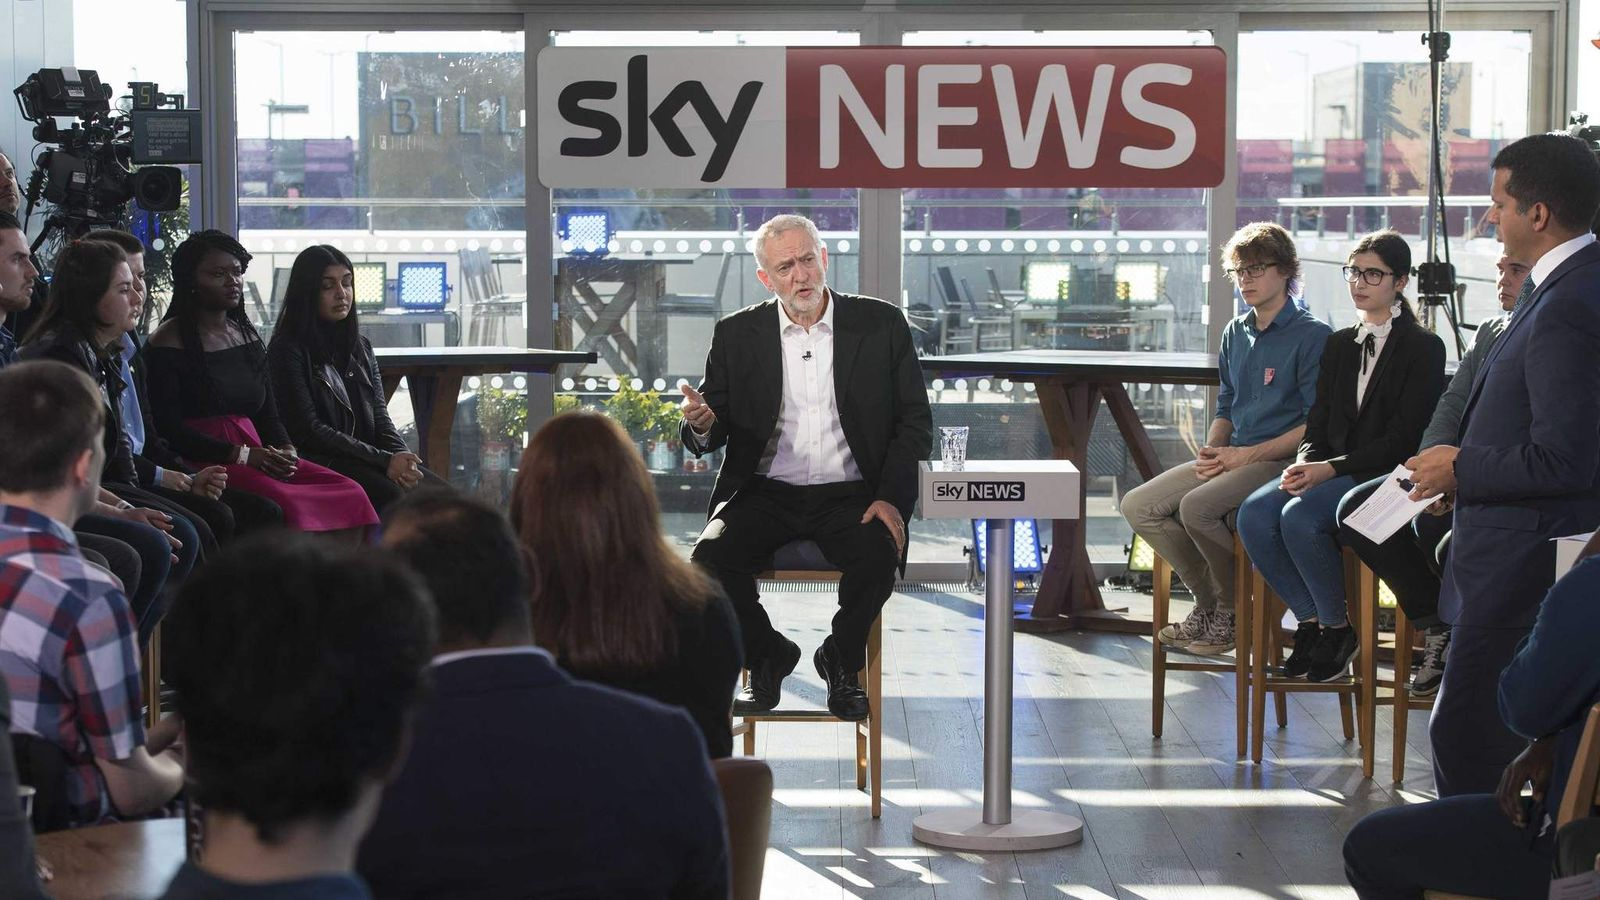 Jeremy Corbyn faces questions on Brexit discussion